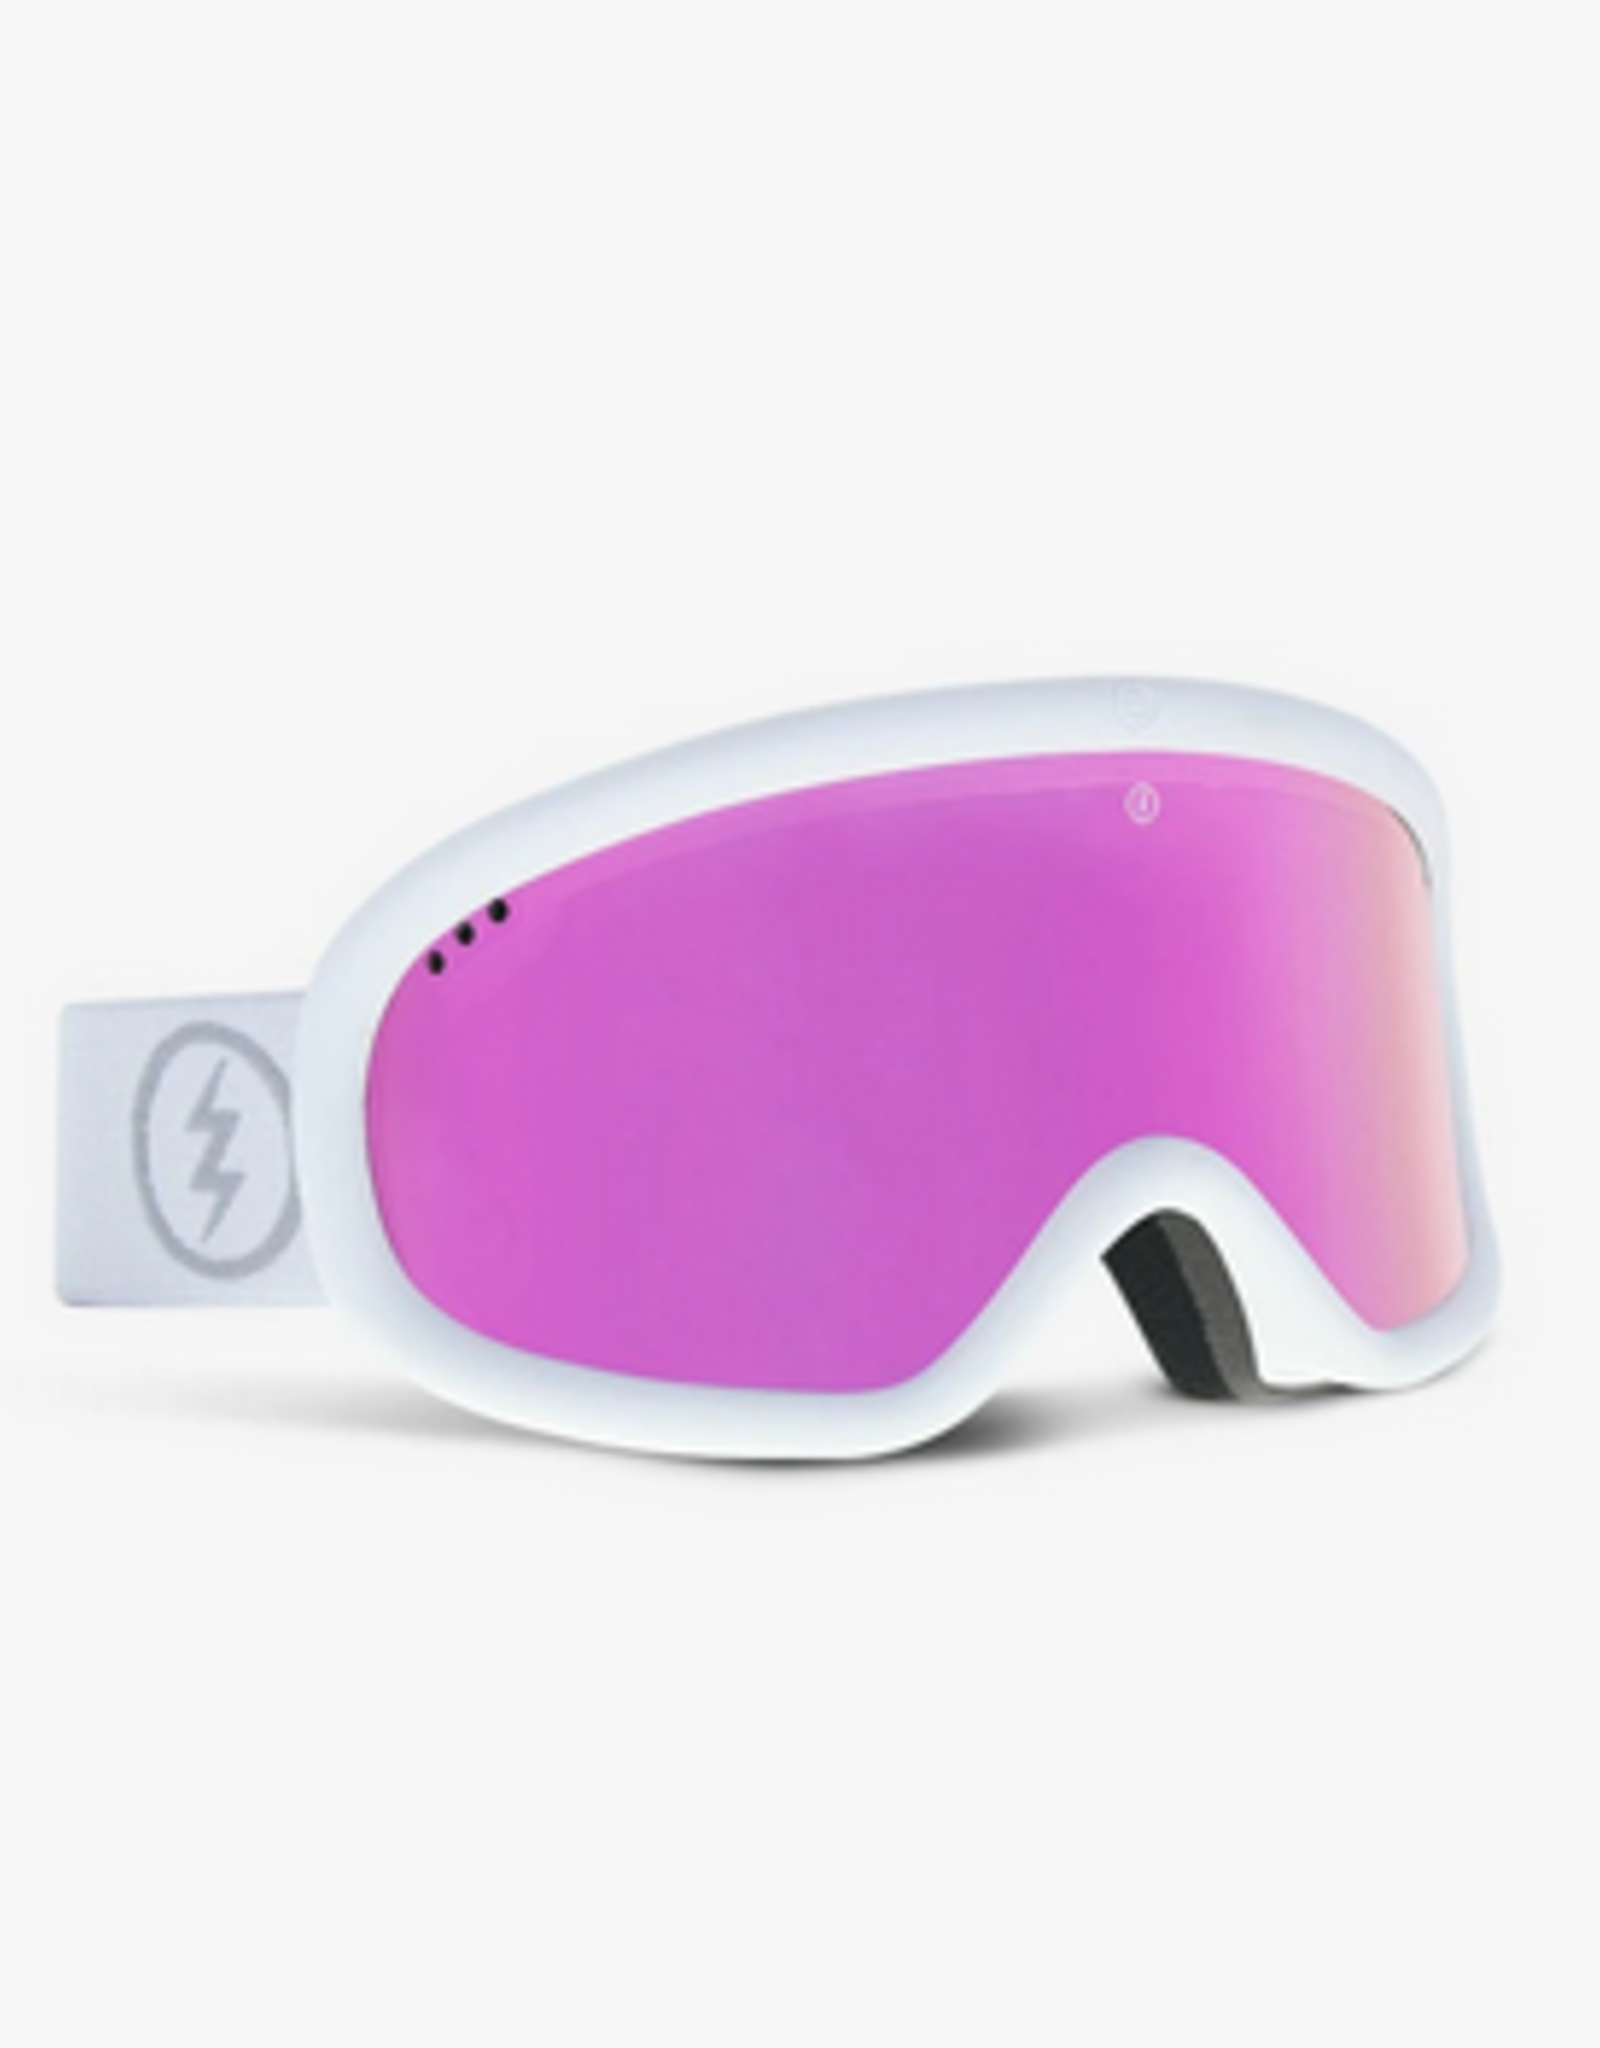 ELECTRIC ELECTRIC 2022 CHARGER GOGGLE MATTE WHITE PURPLE CHROME